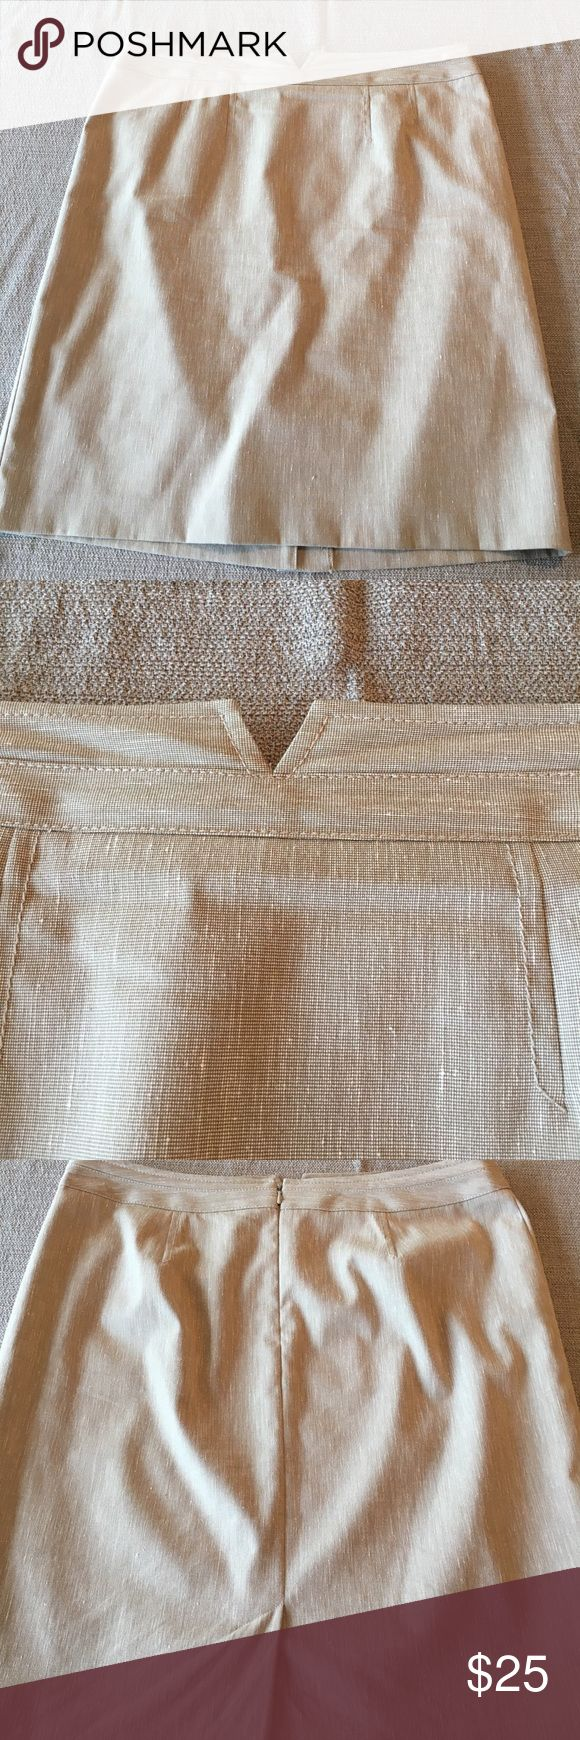 Tan Pencil Skirt with V design Halogen tan suiting skirt with cute v notch in front for tucked in blouses. Excellent condition - worn only a couple of times. Great year round office staple. Halogen Skirts Pencil